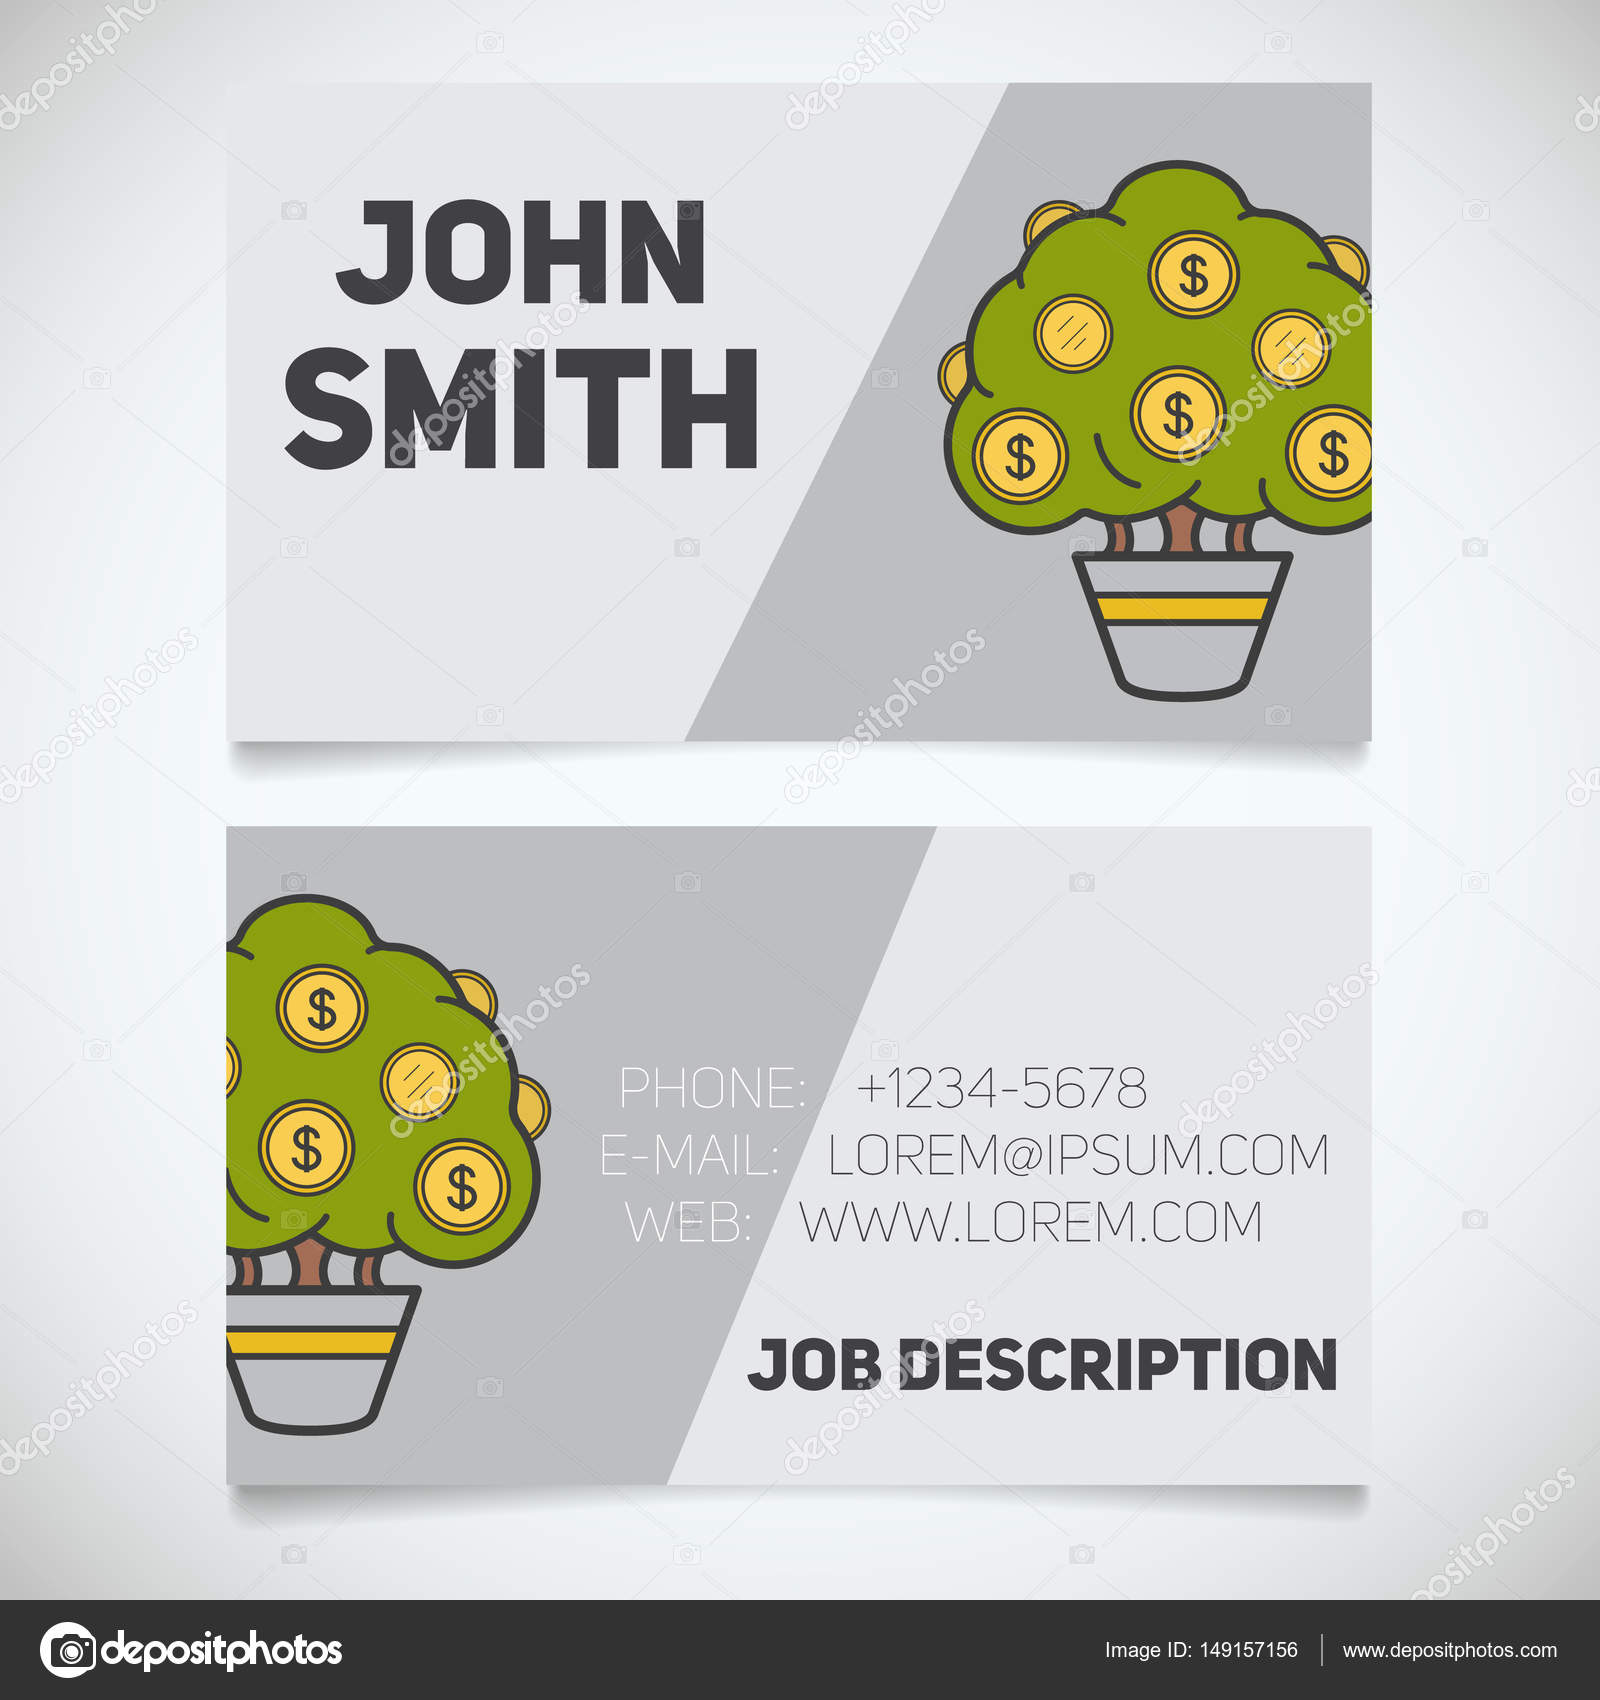 Business card print template with money tree logo — Stock Vector ...